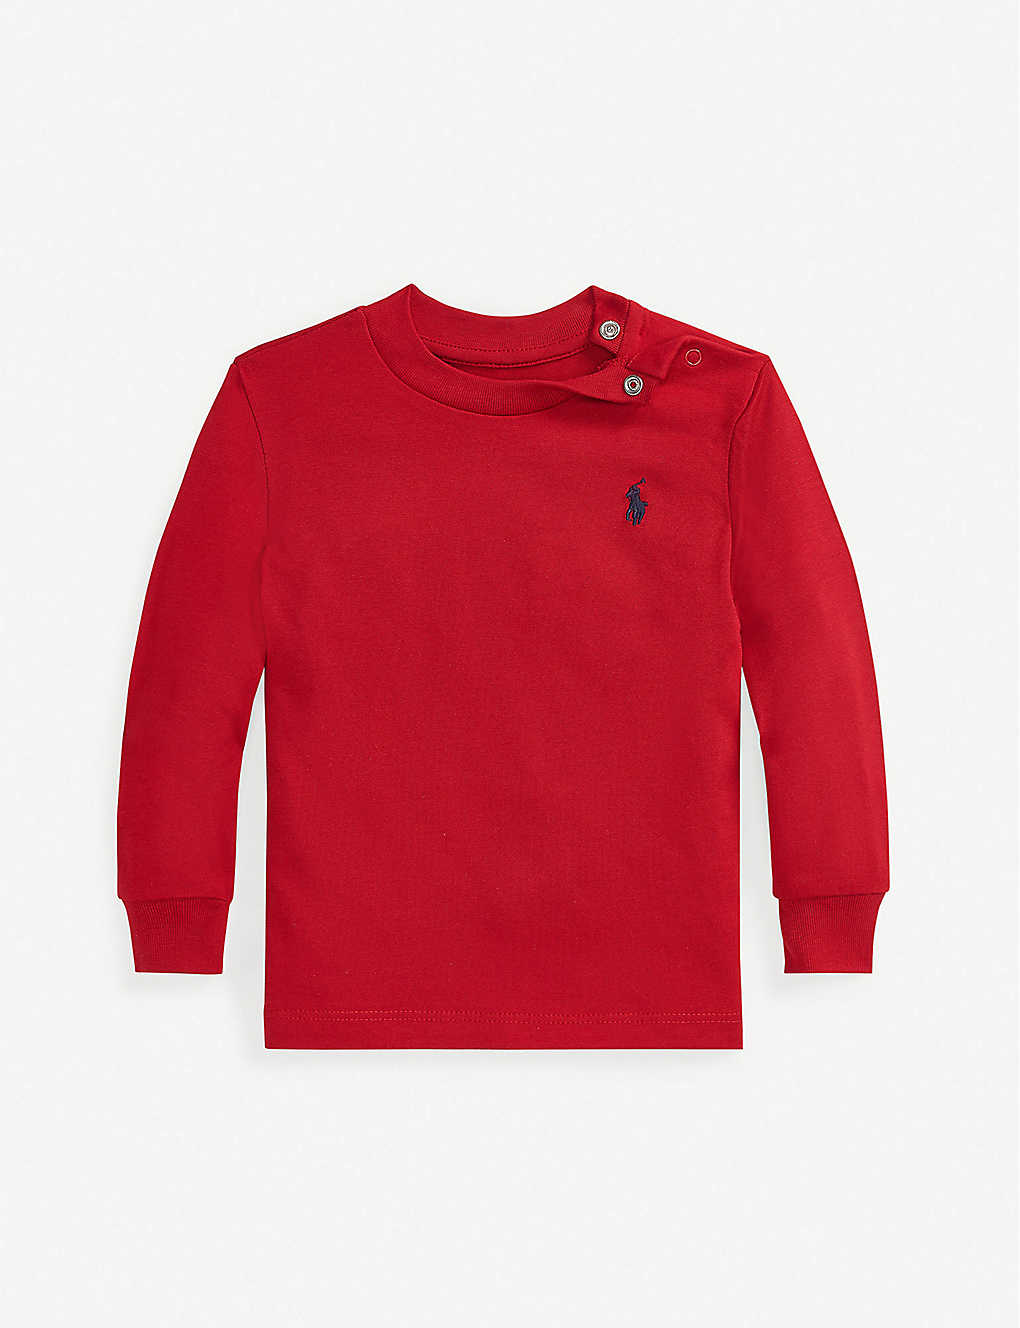 RALPH LAUREN: Logo-embroidered cotton-jersey top 3-24 months